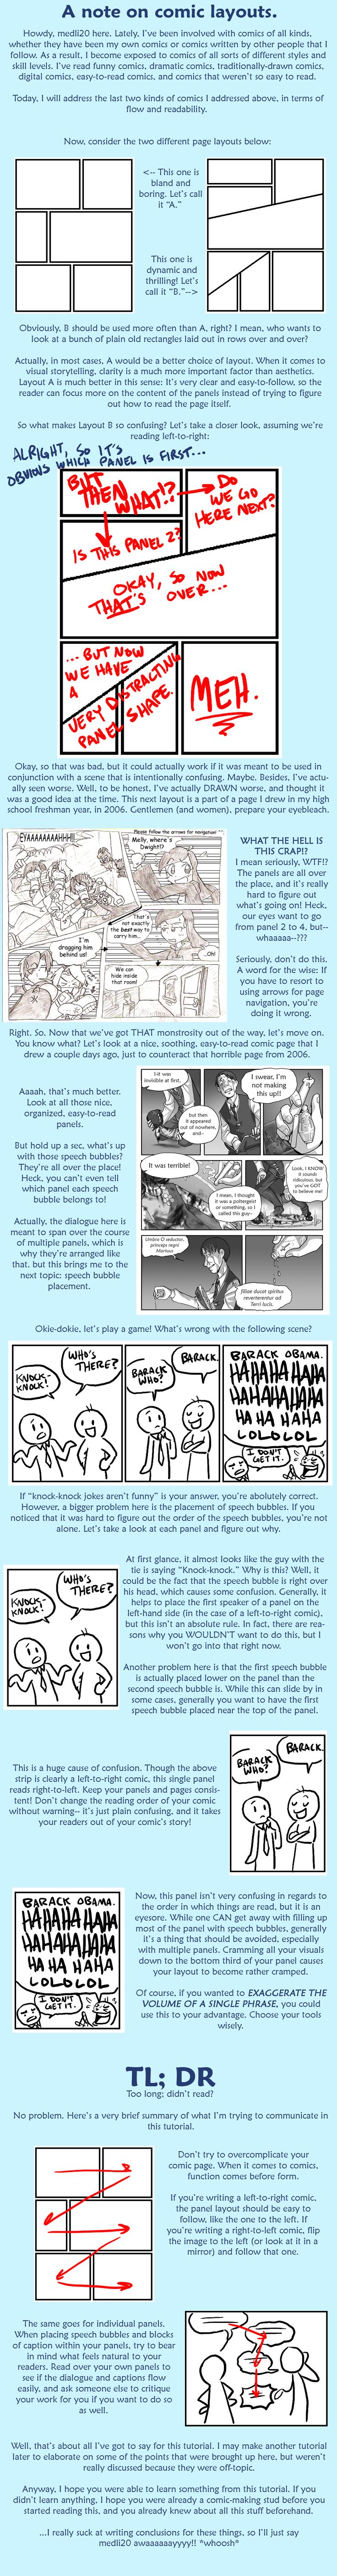 Tutorial: Comic / Manga Layout ----Manga Art Drawing Drafting Storyboarding--- [[[medli20.deviantart.com]]]